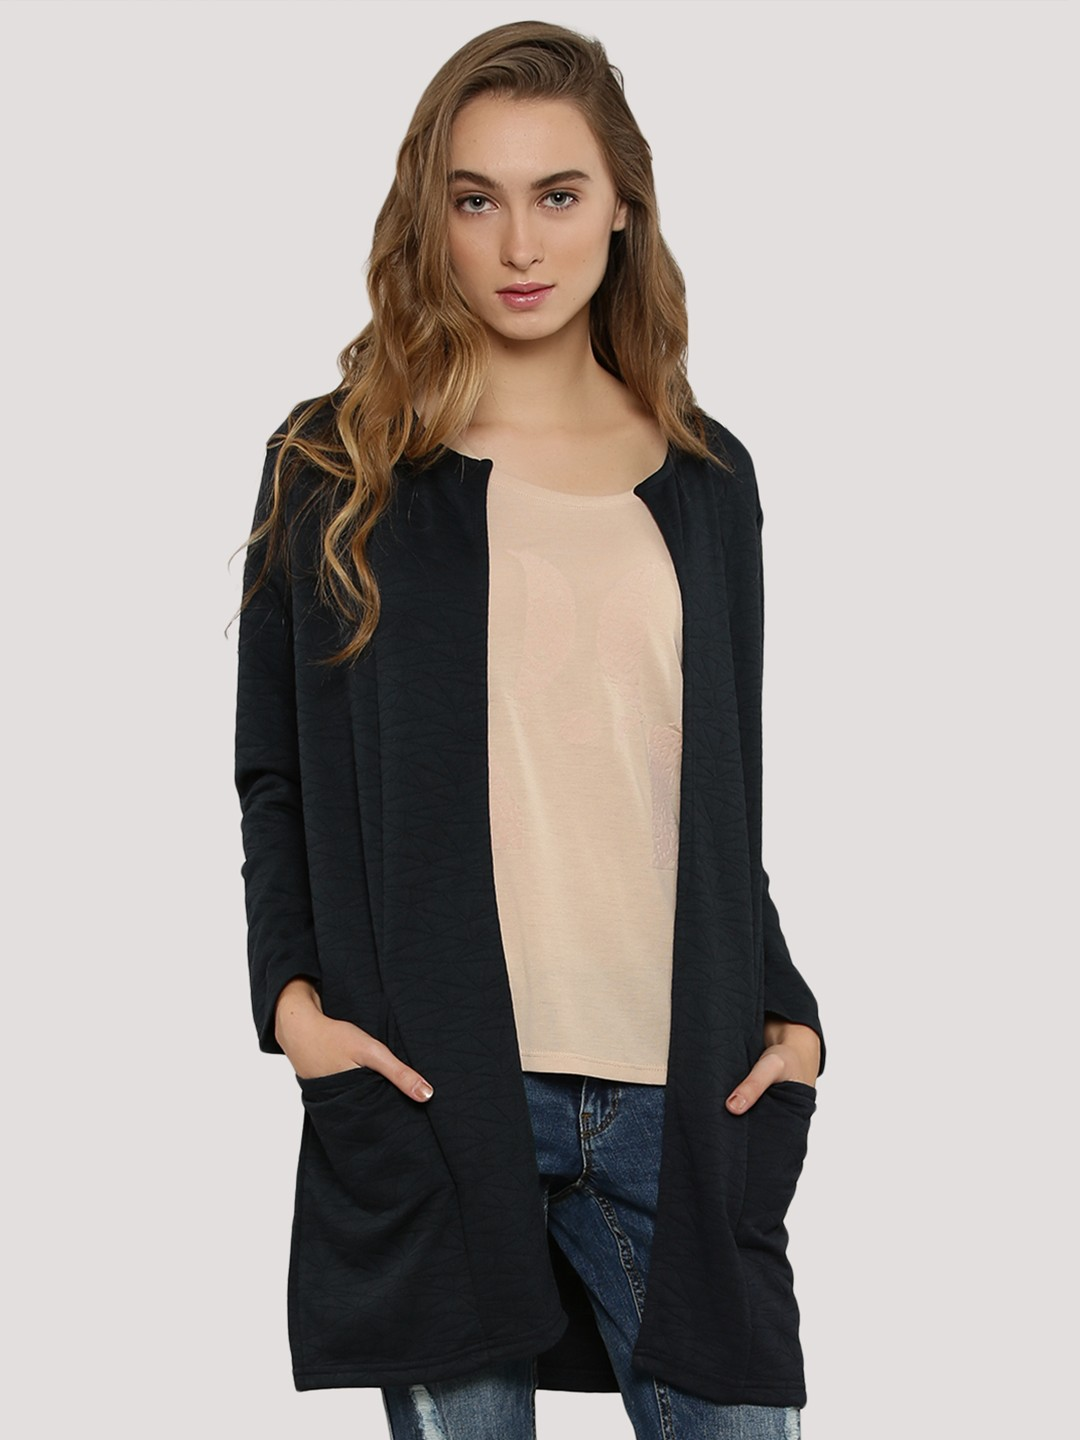 Buy Men Cardigans online in India. Huge selection of Cardigans at bierek.tk All India FREE Shipping. Cash on Delivery available.